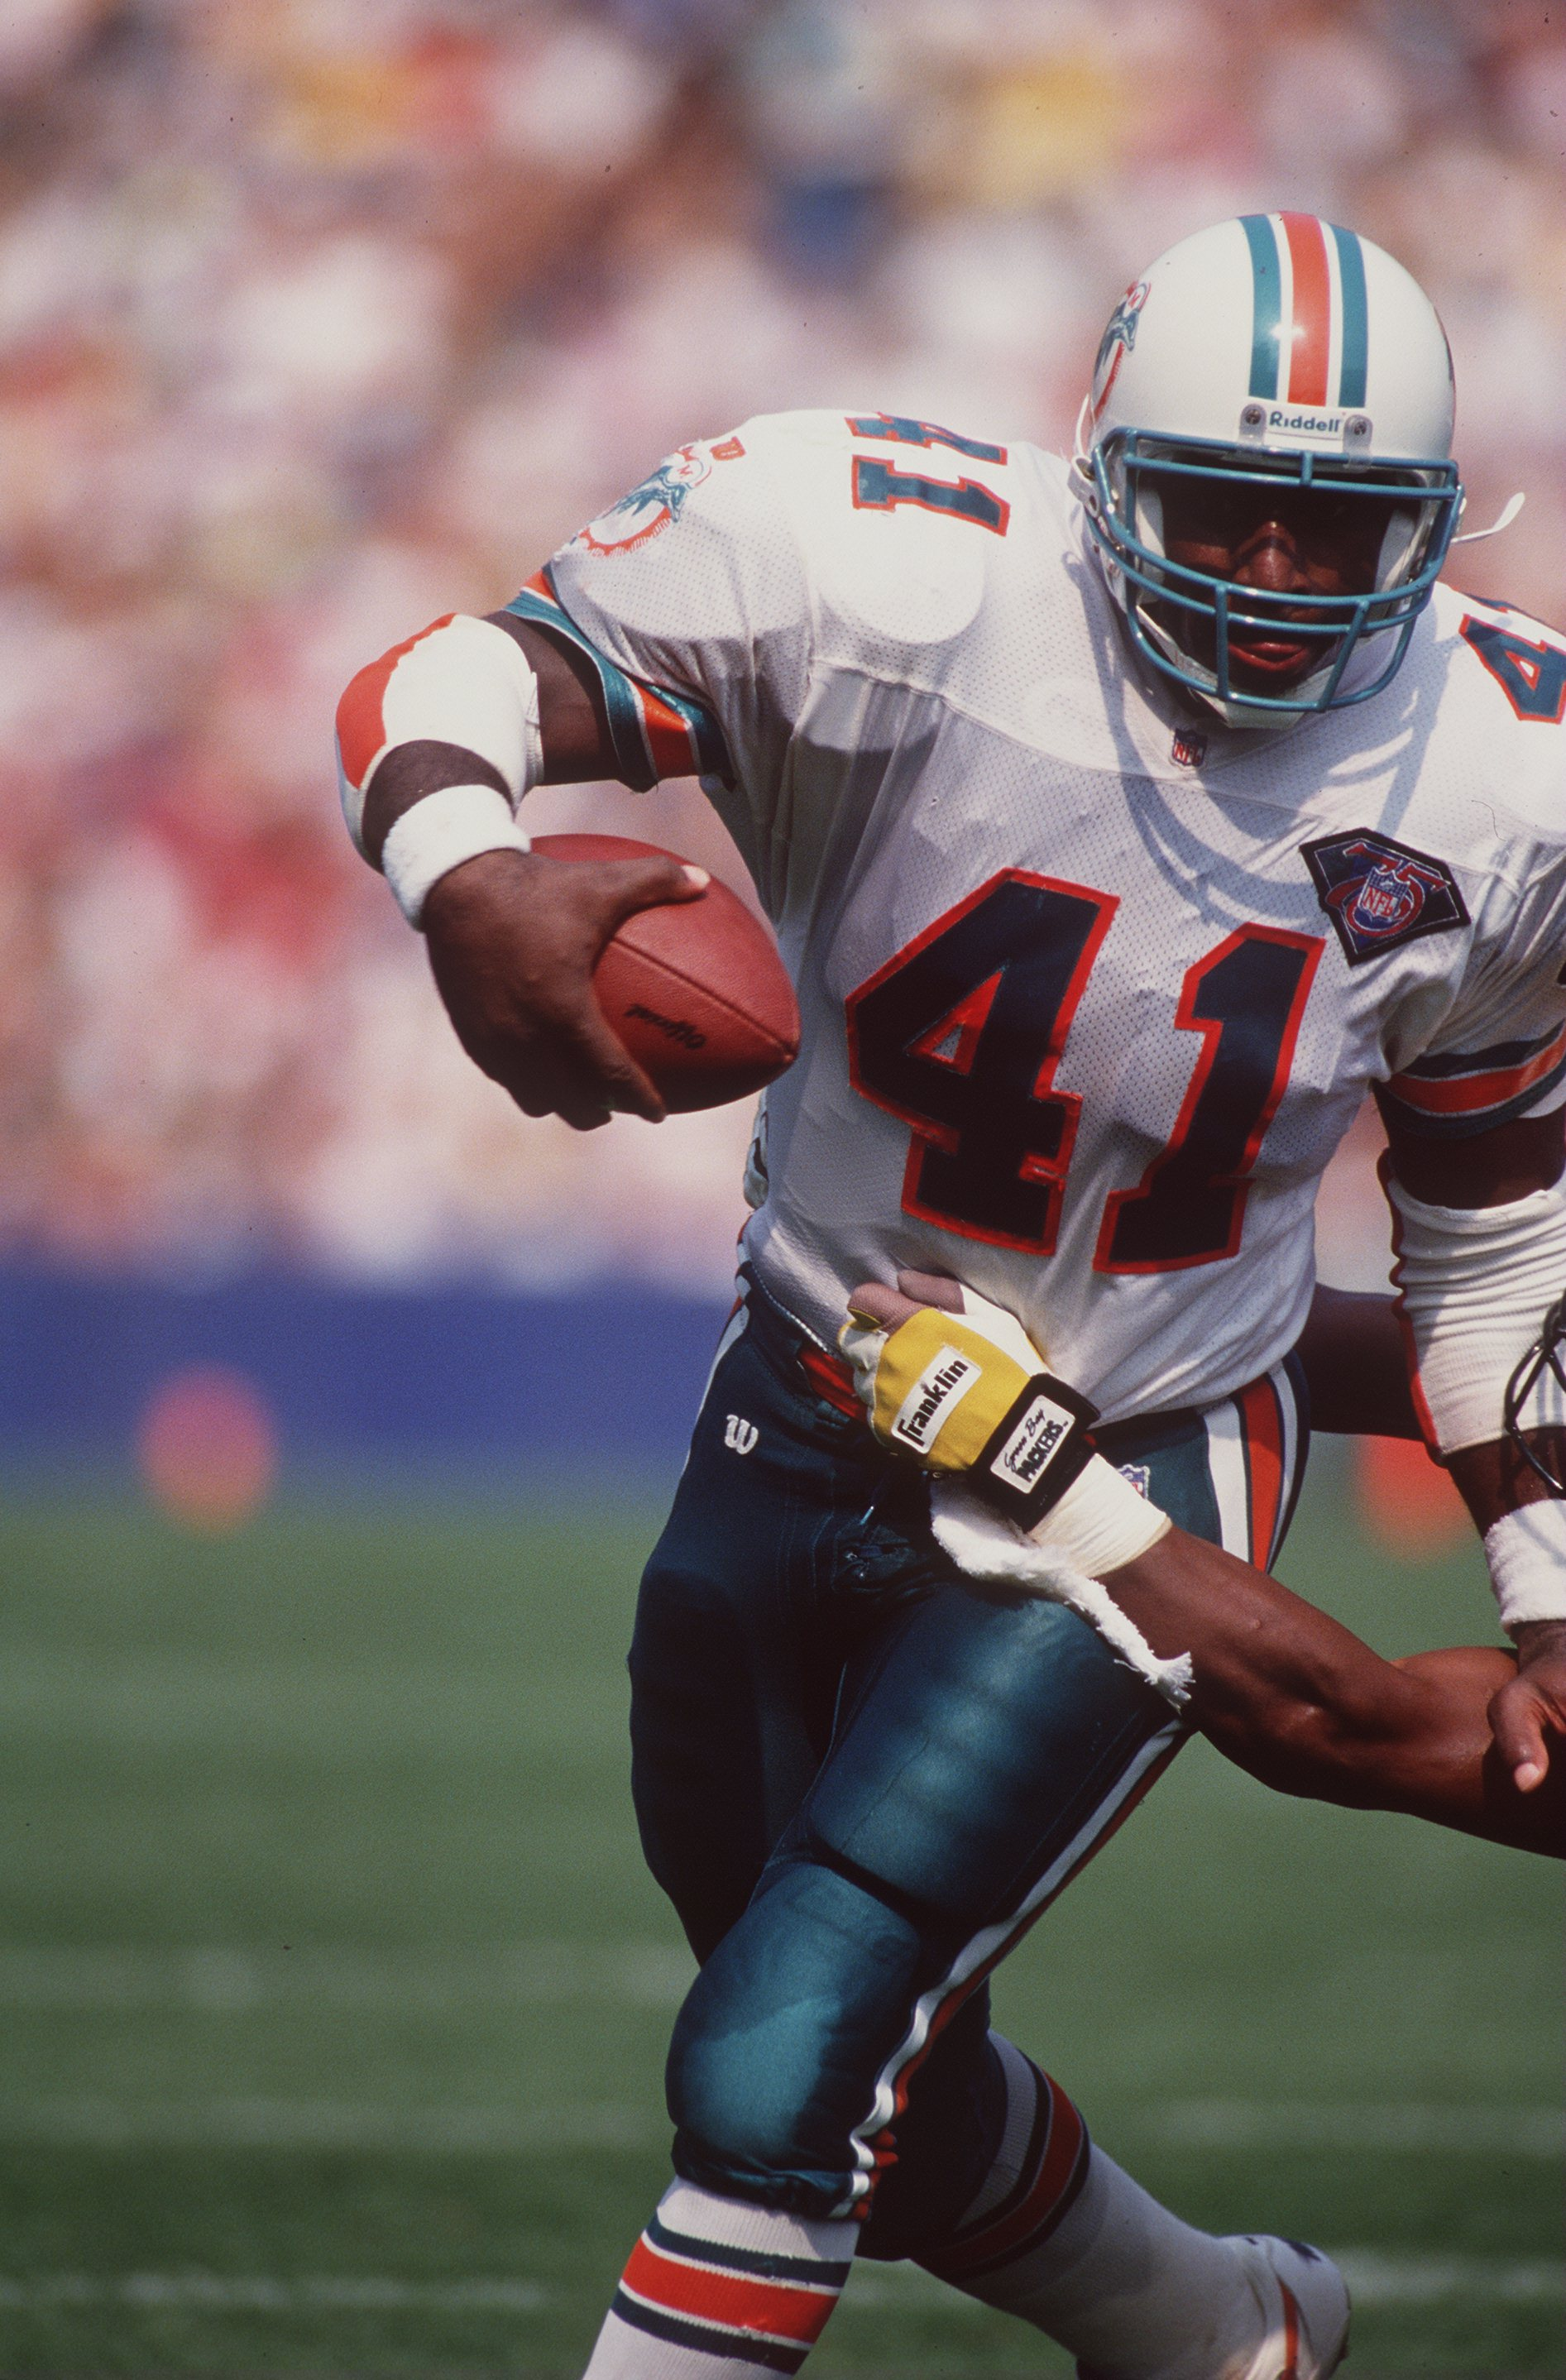 11 Sep 1994:  Running back Keith Byars of the Miami Dolphins looks up field as he uses his left arm to fend off an attempted tackle by a defensive player from the Green Bay Packers while running with the football during a carry in the Dolphins 24-14 victo